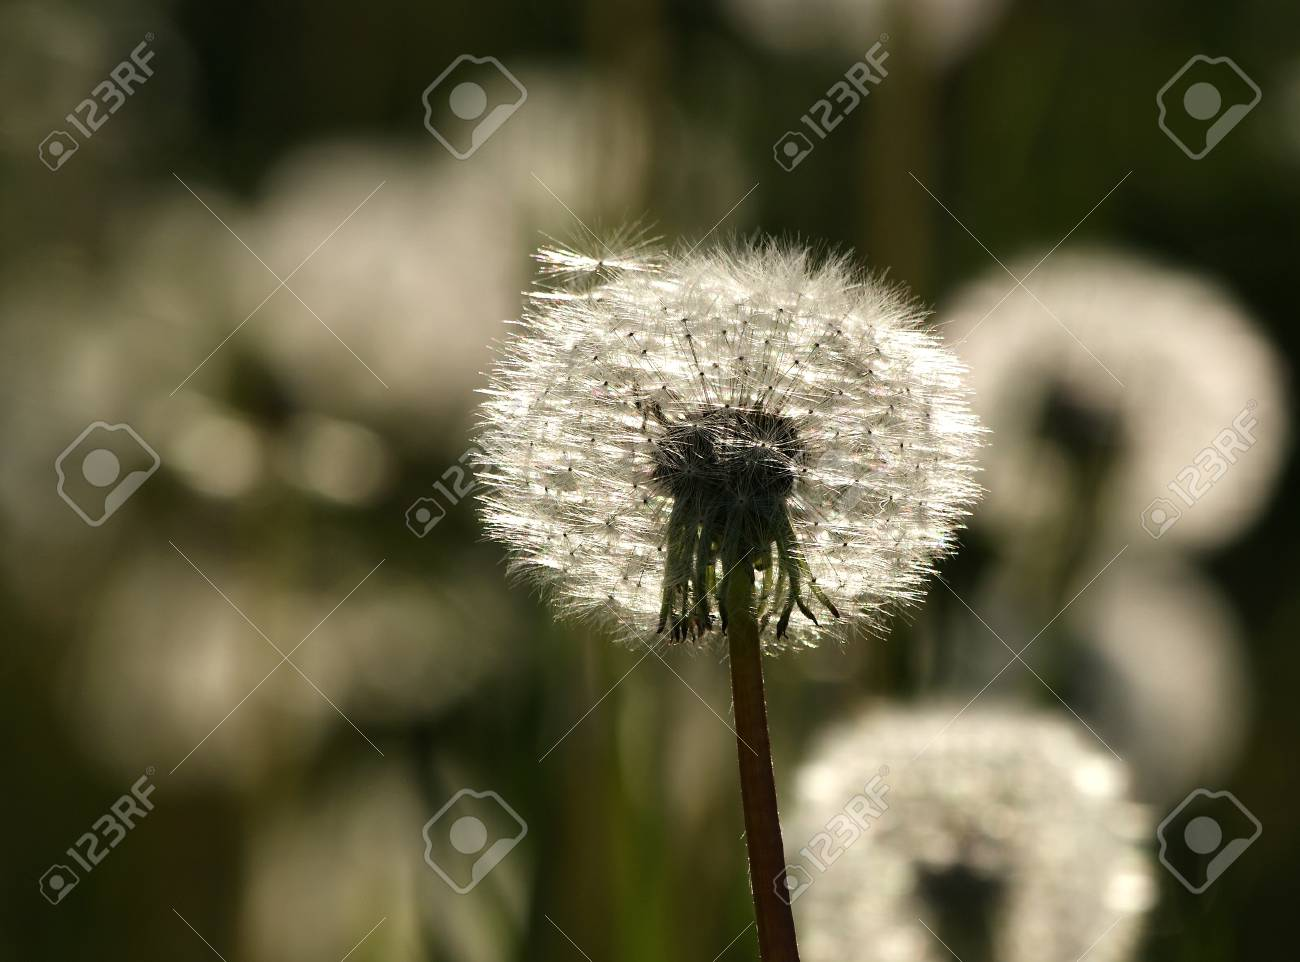 The Heads Of Large White Fluffy Dandelions In Spring Field Stock